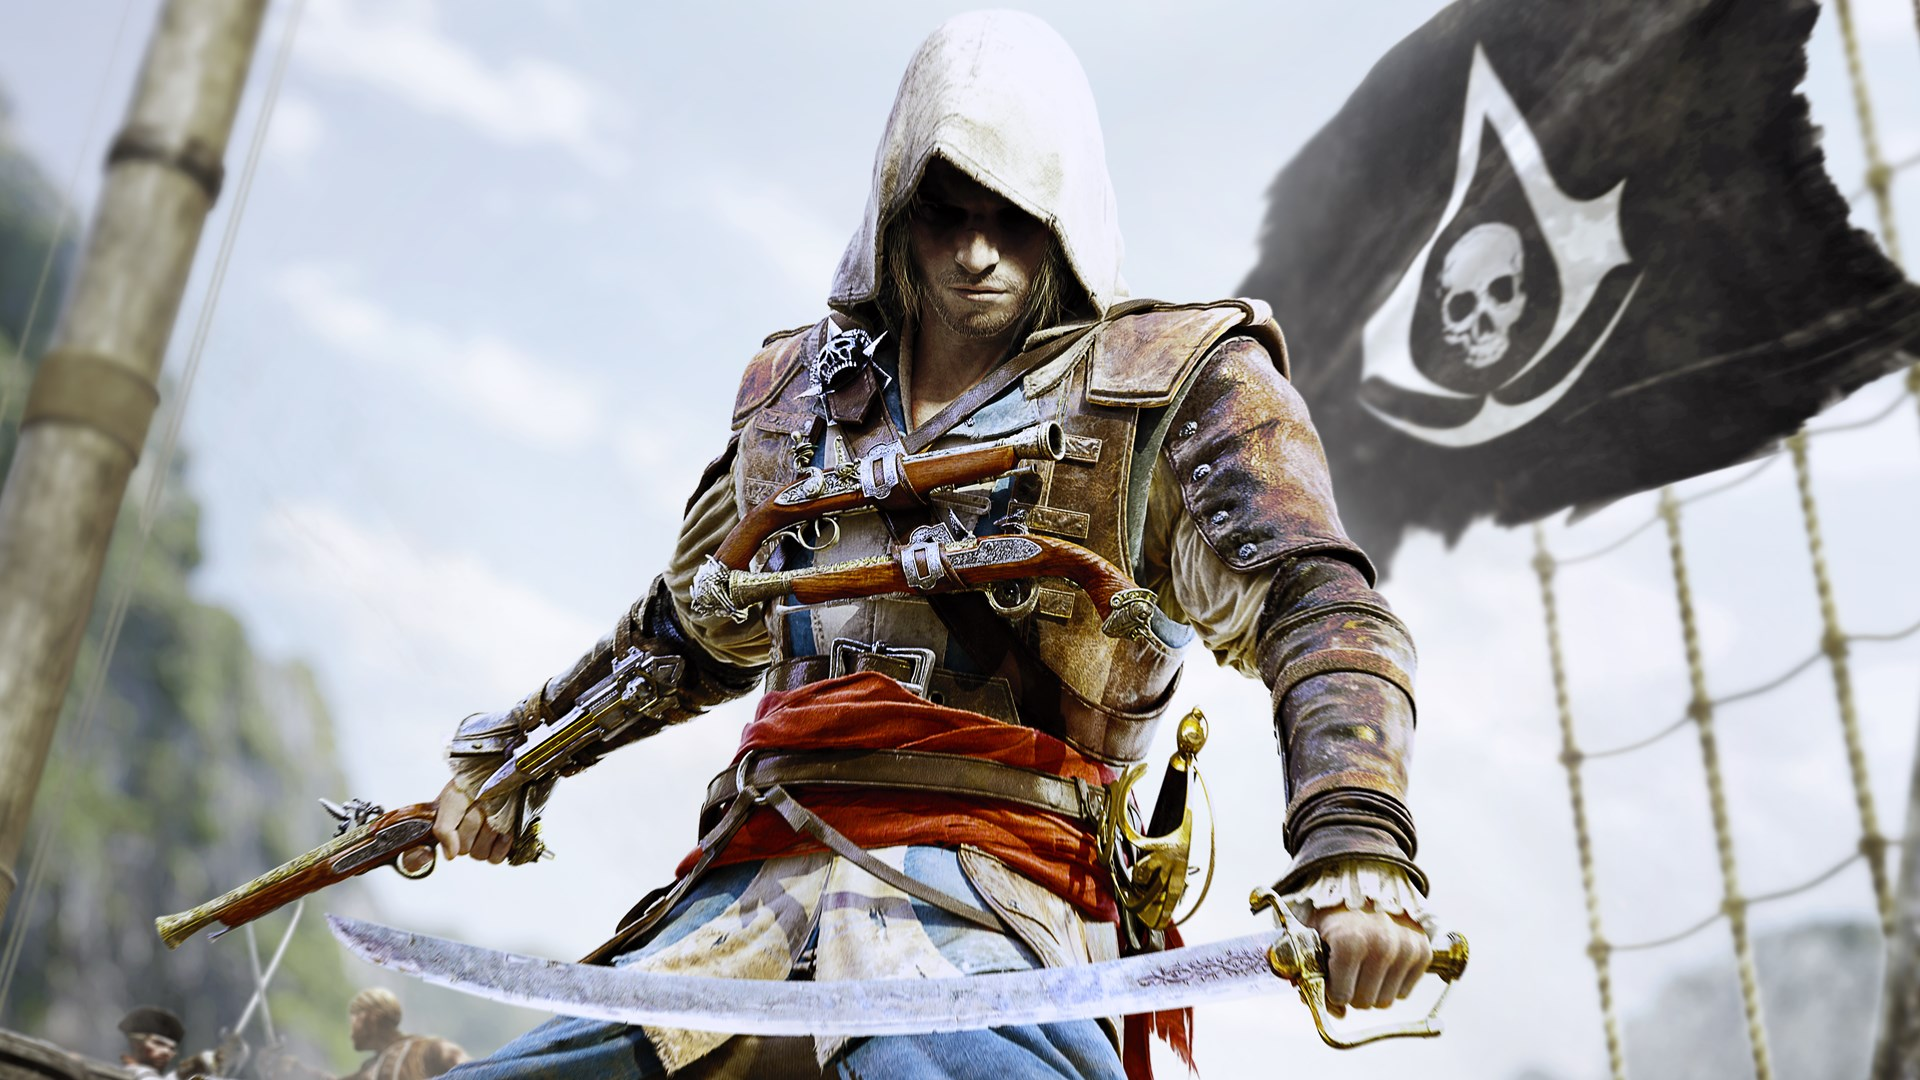 Assassins Creed Iv Black Flag 4k Hd Games 4k Wallpapers Images